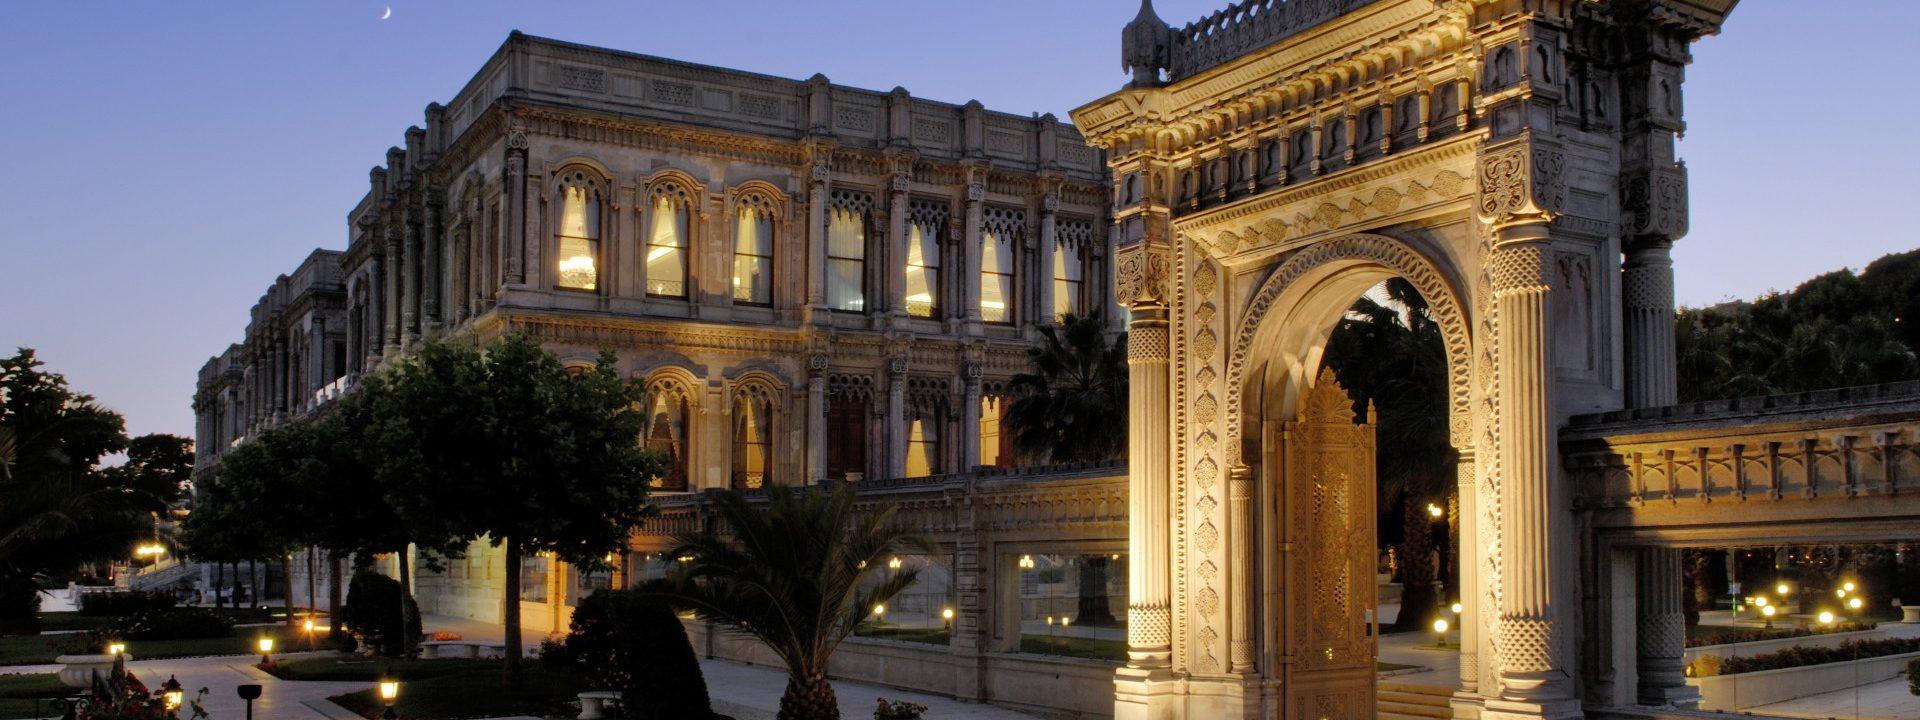 The Çırağan Palace Istanbul celebrates 30 years as a Kempinski with gifts for guests